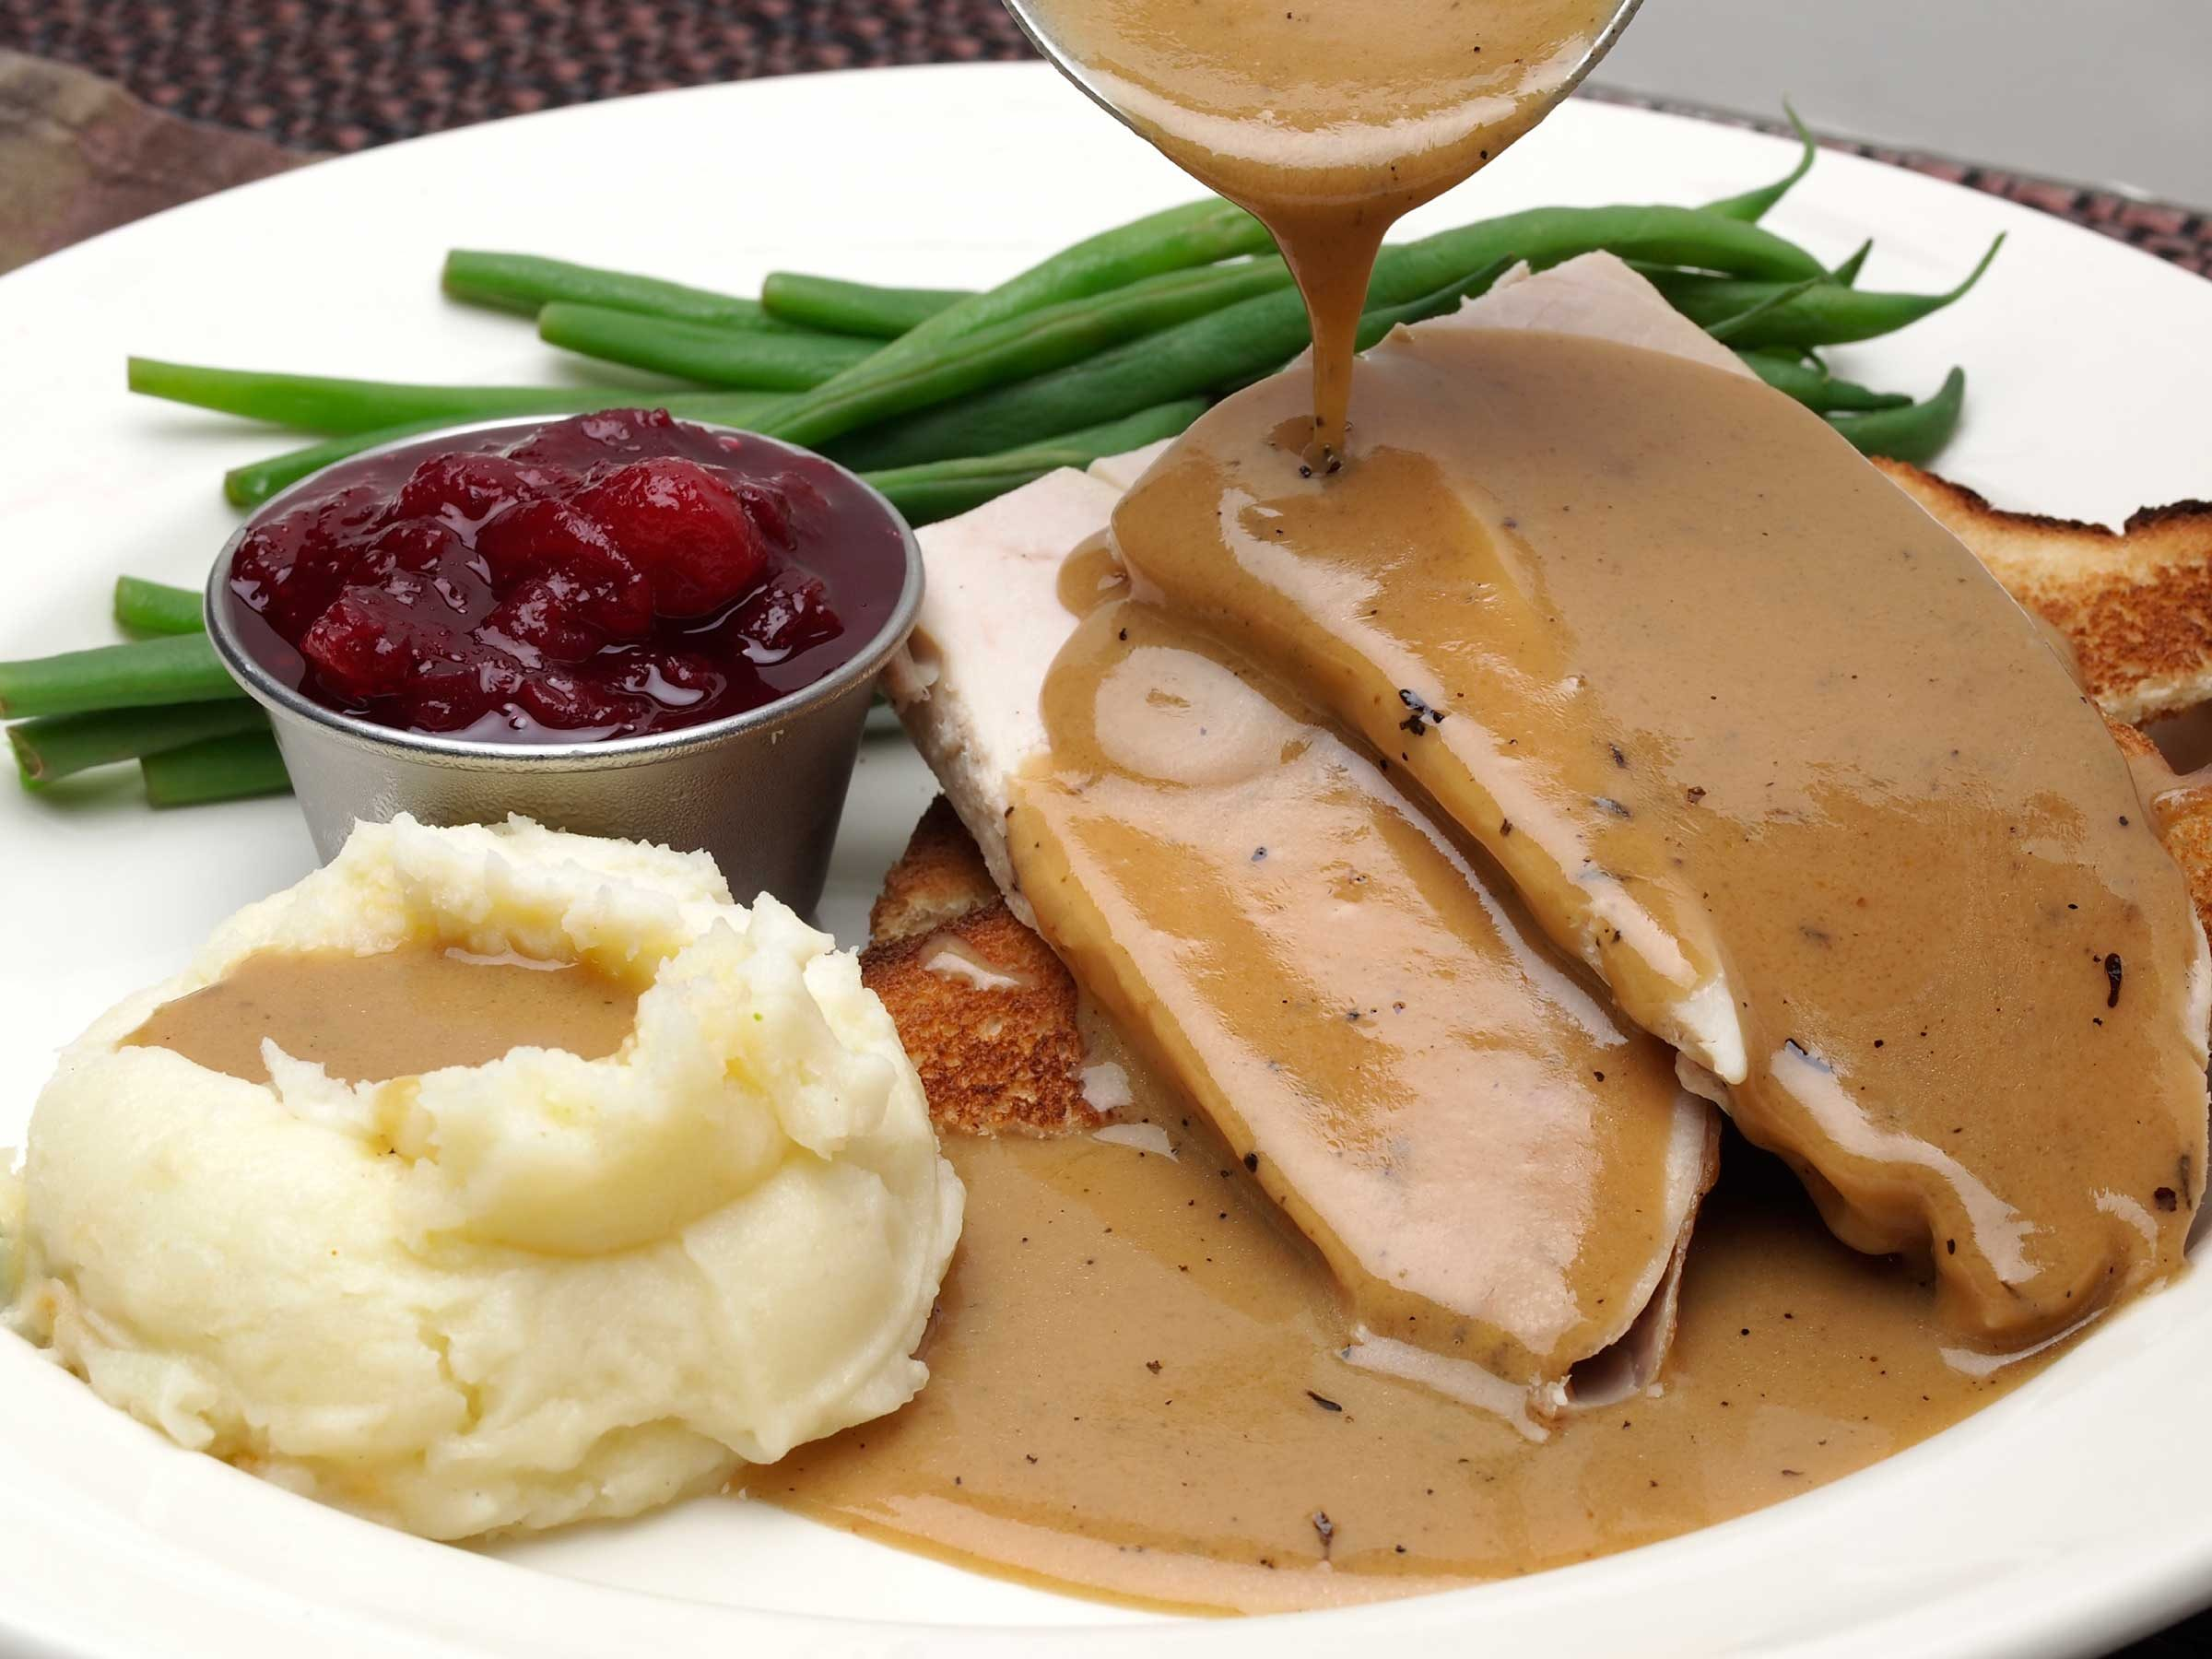 My sister follows a gluten-free diet, and I planned desserts for her but totally forgot about the gravy. How do I thicken gluten-free gravy?